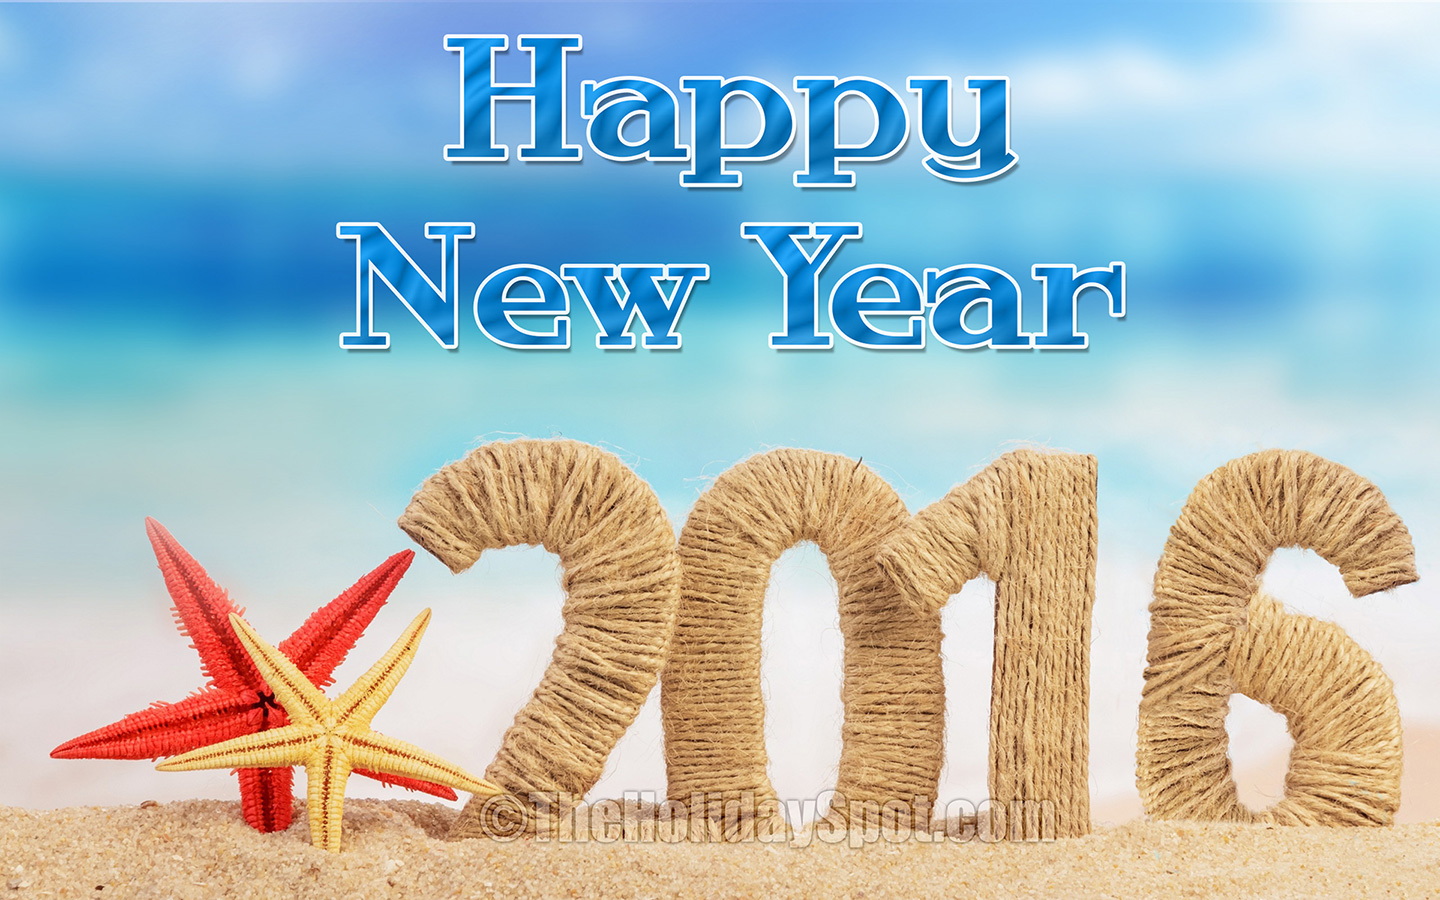 New Year 2016 Wallpapers for Desktop, Widescreen, Mobile ...